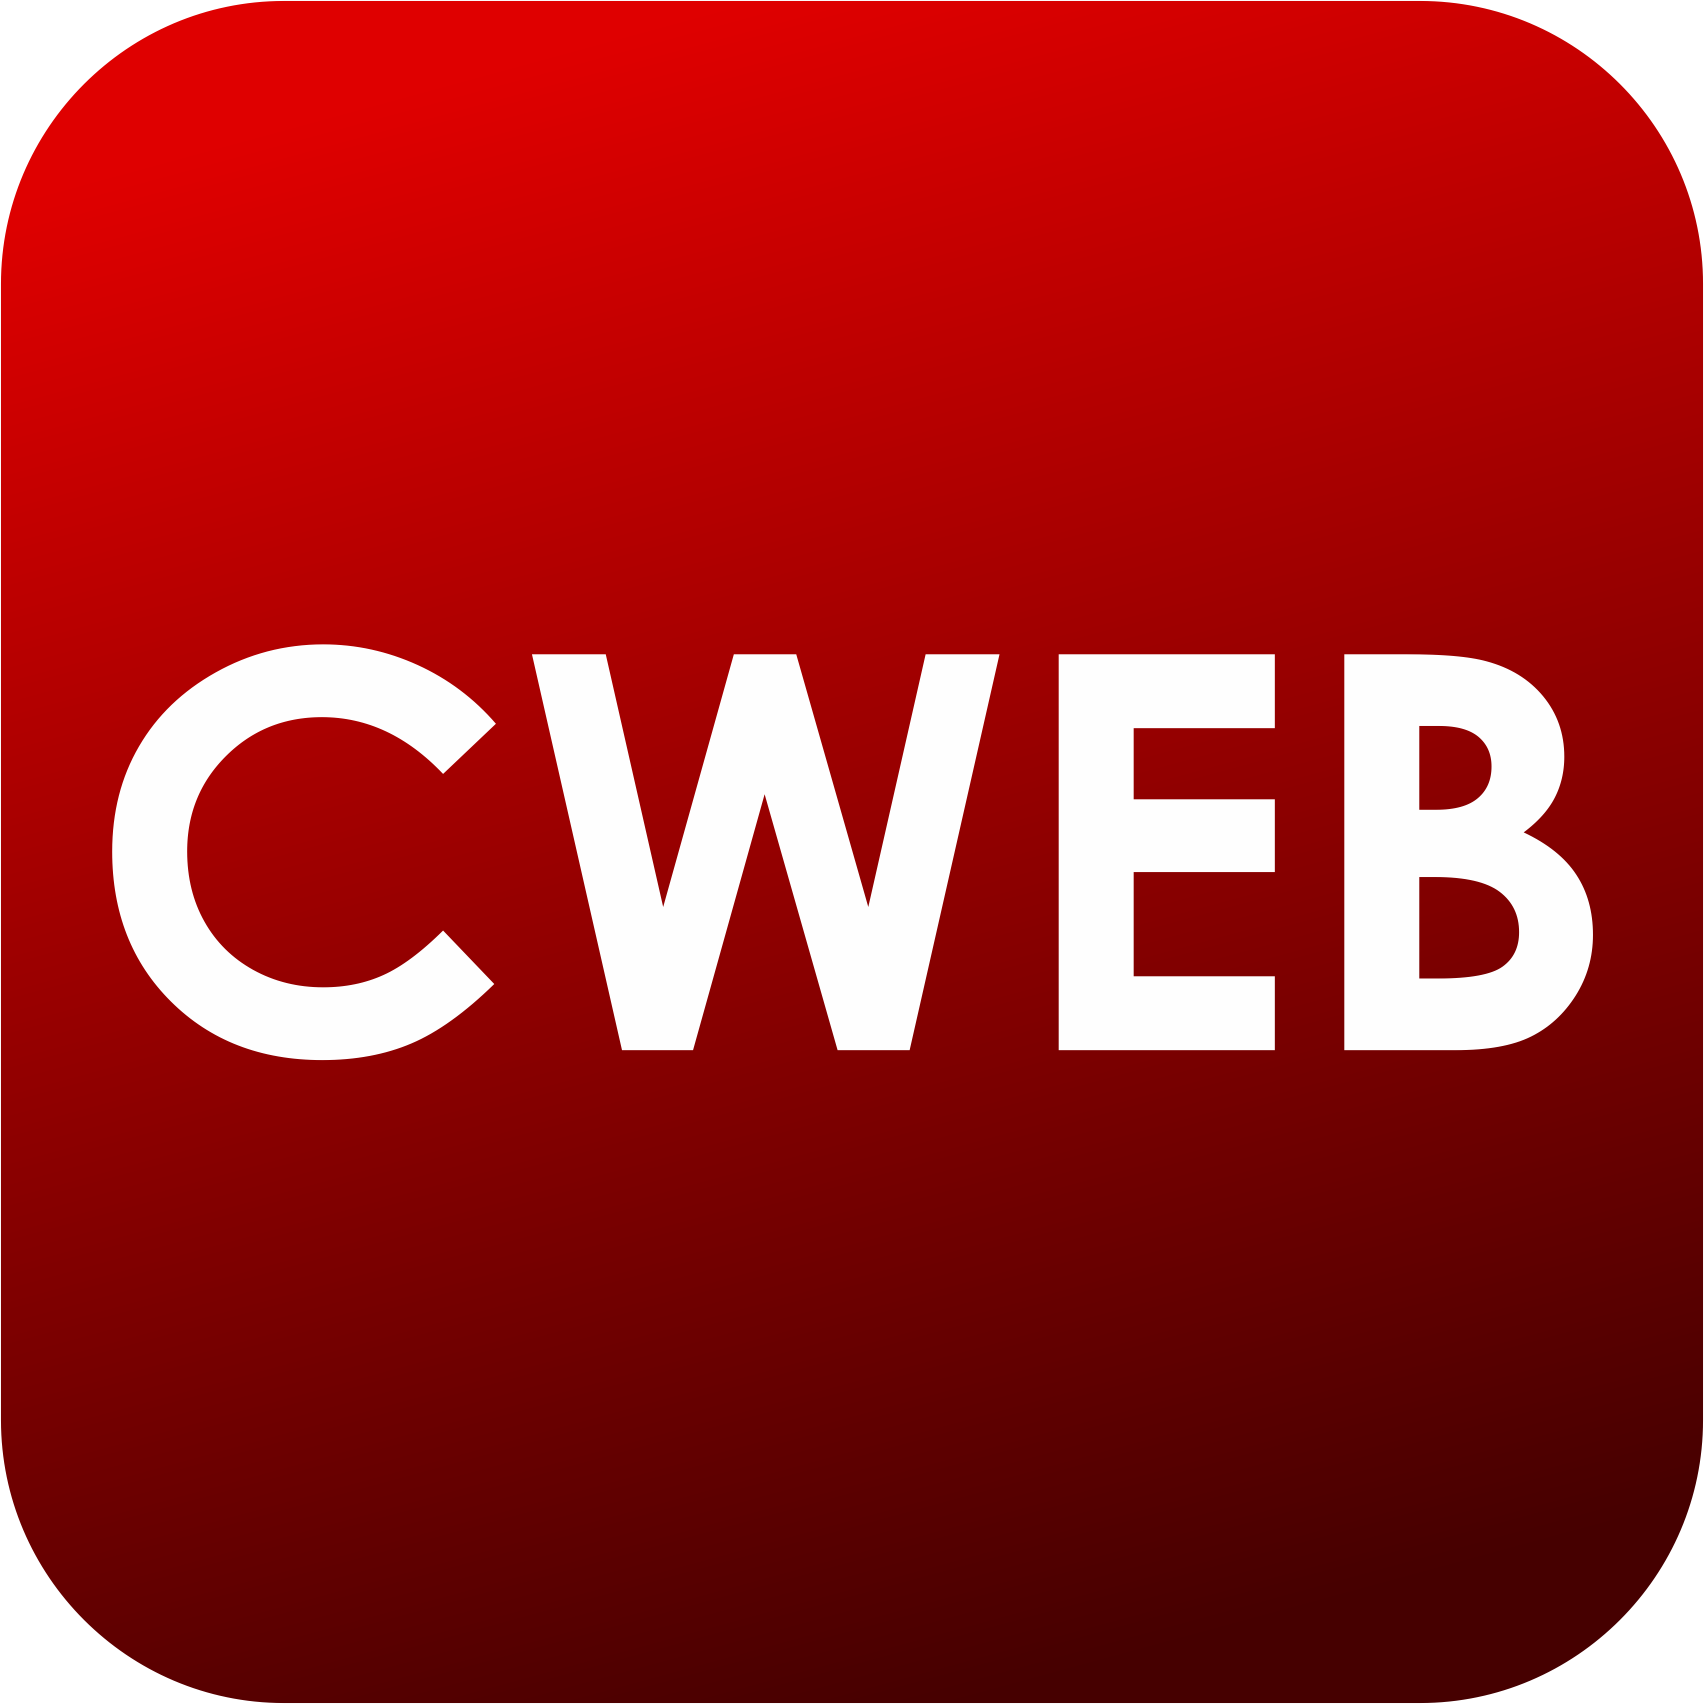 CWEB.com - Trending News, Business News, Celebrity, Cooking Recipes